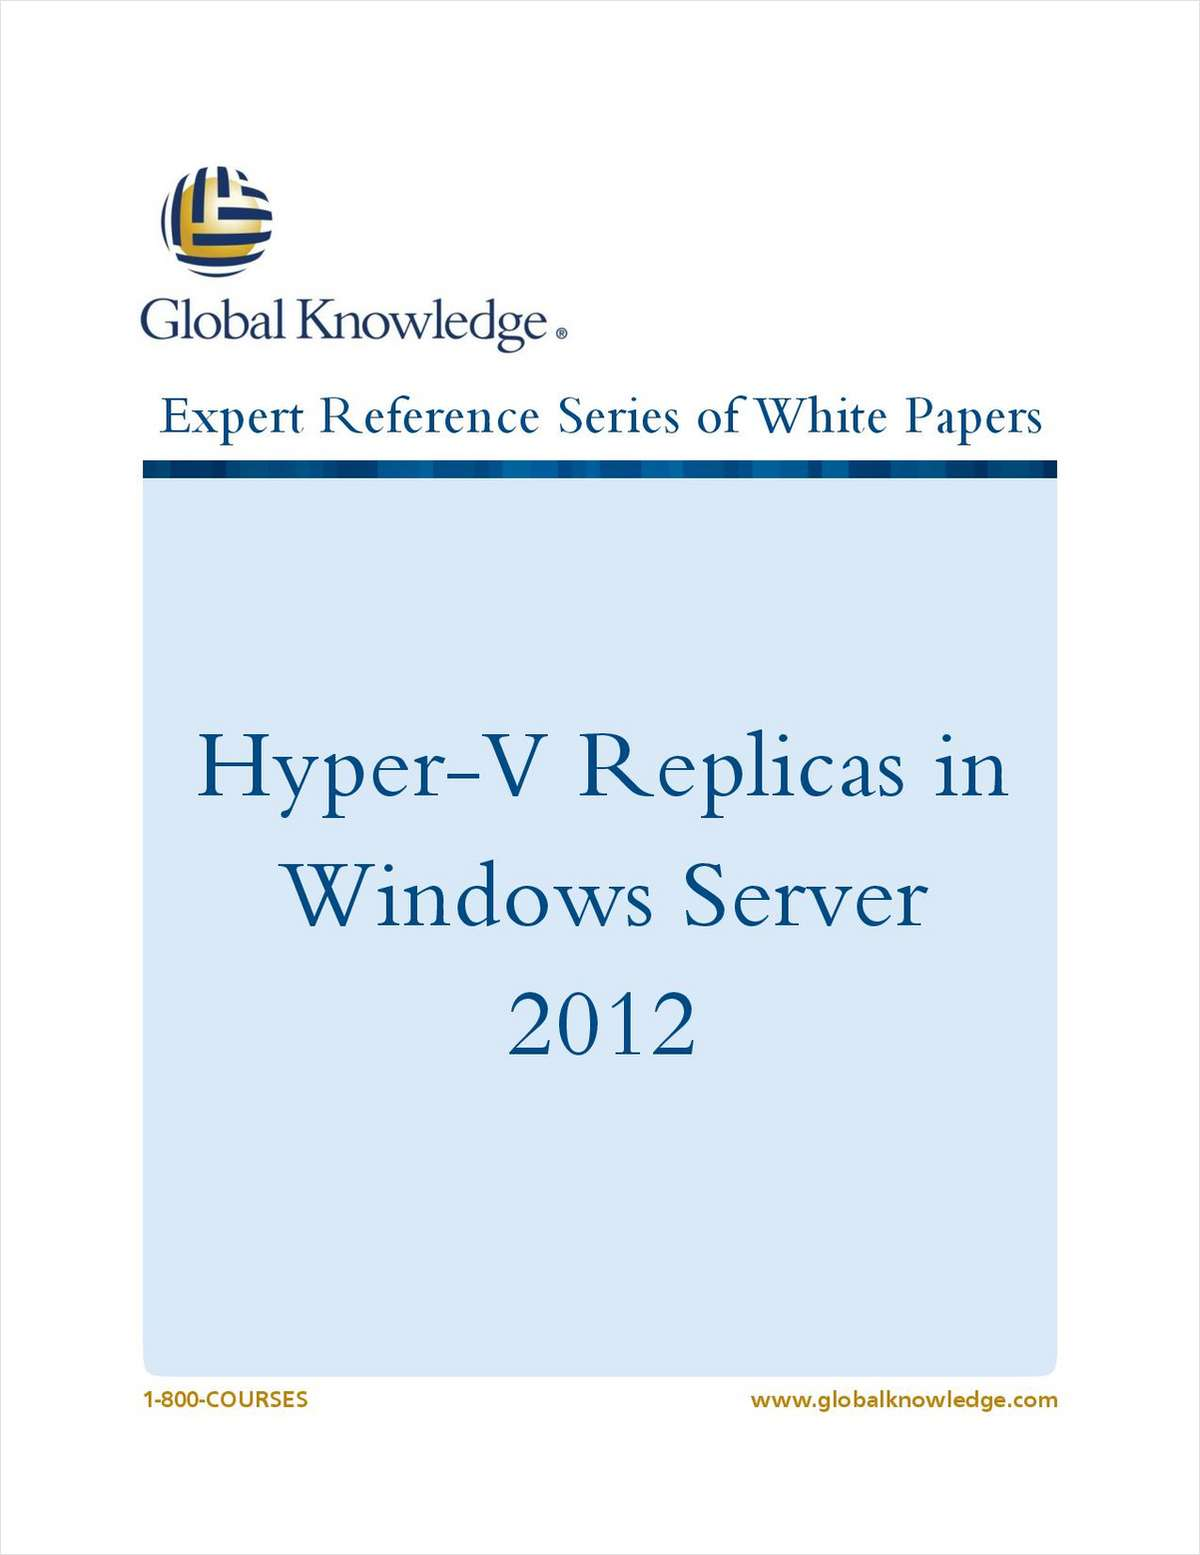 Hyper-V Replicas in Windows Server 2012